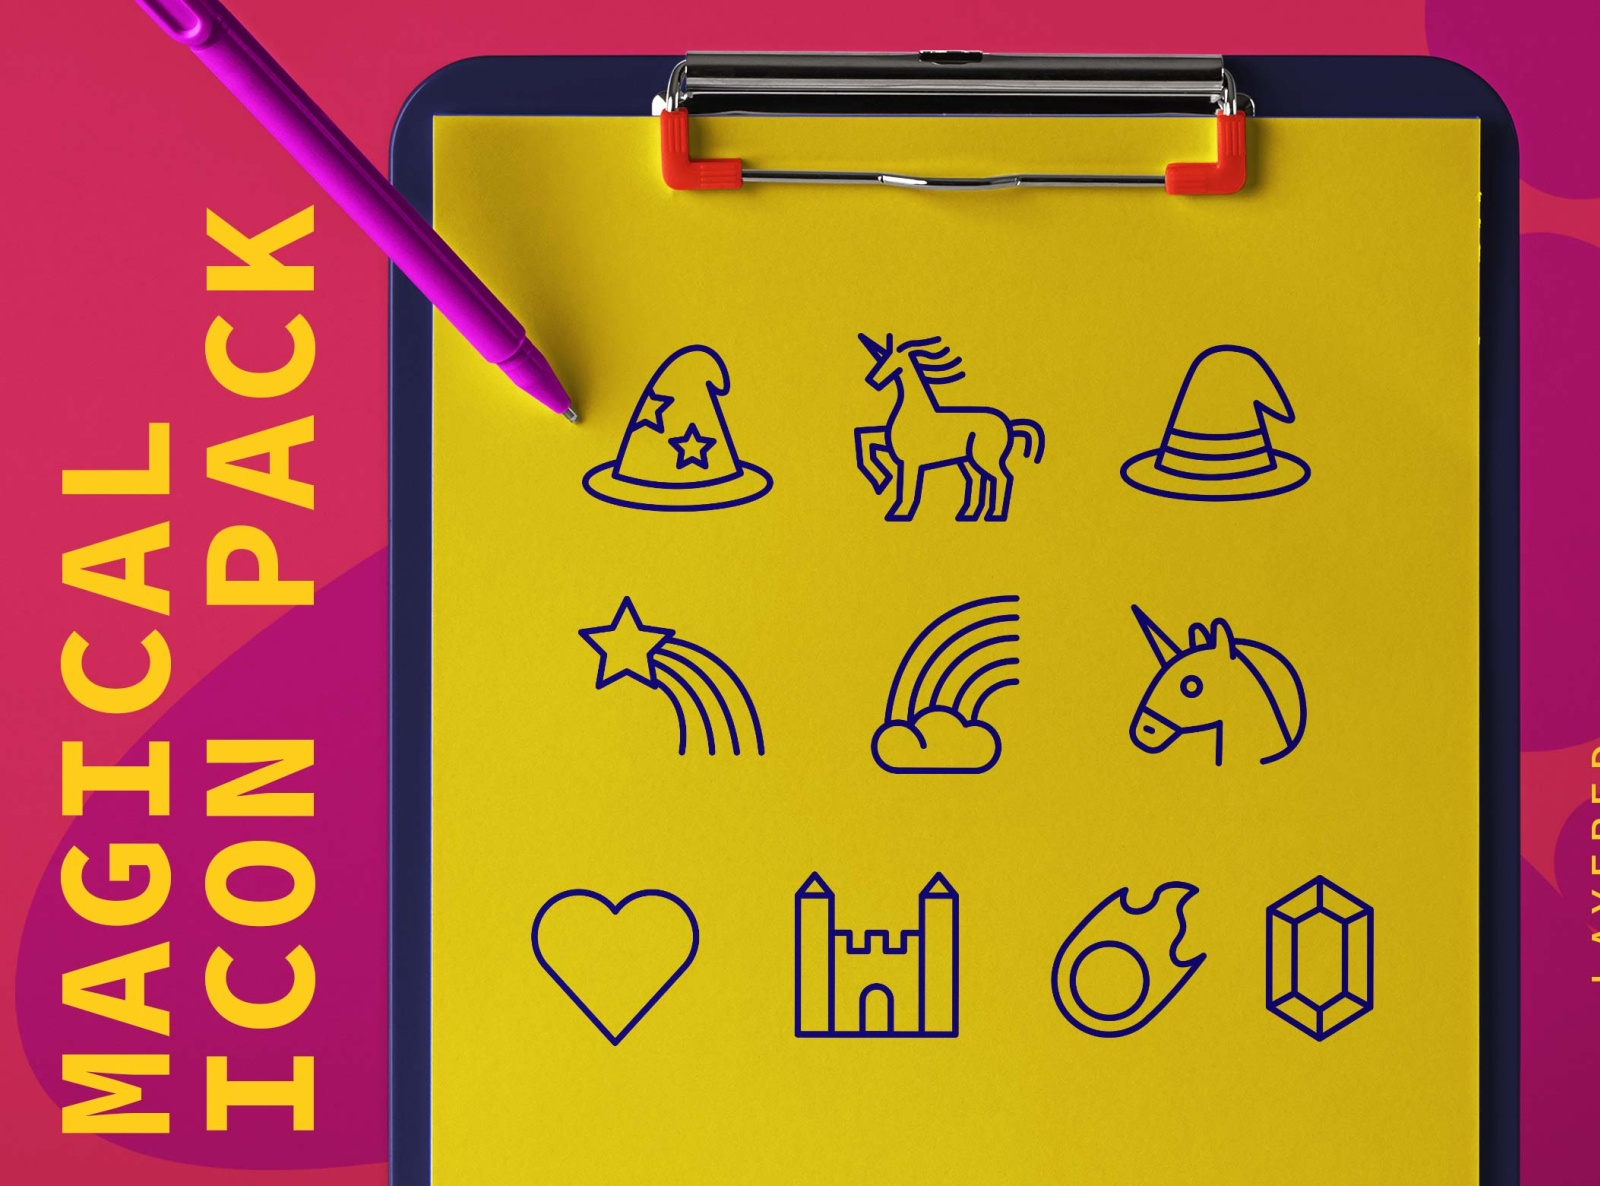 Magical icon pack